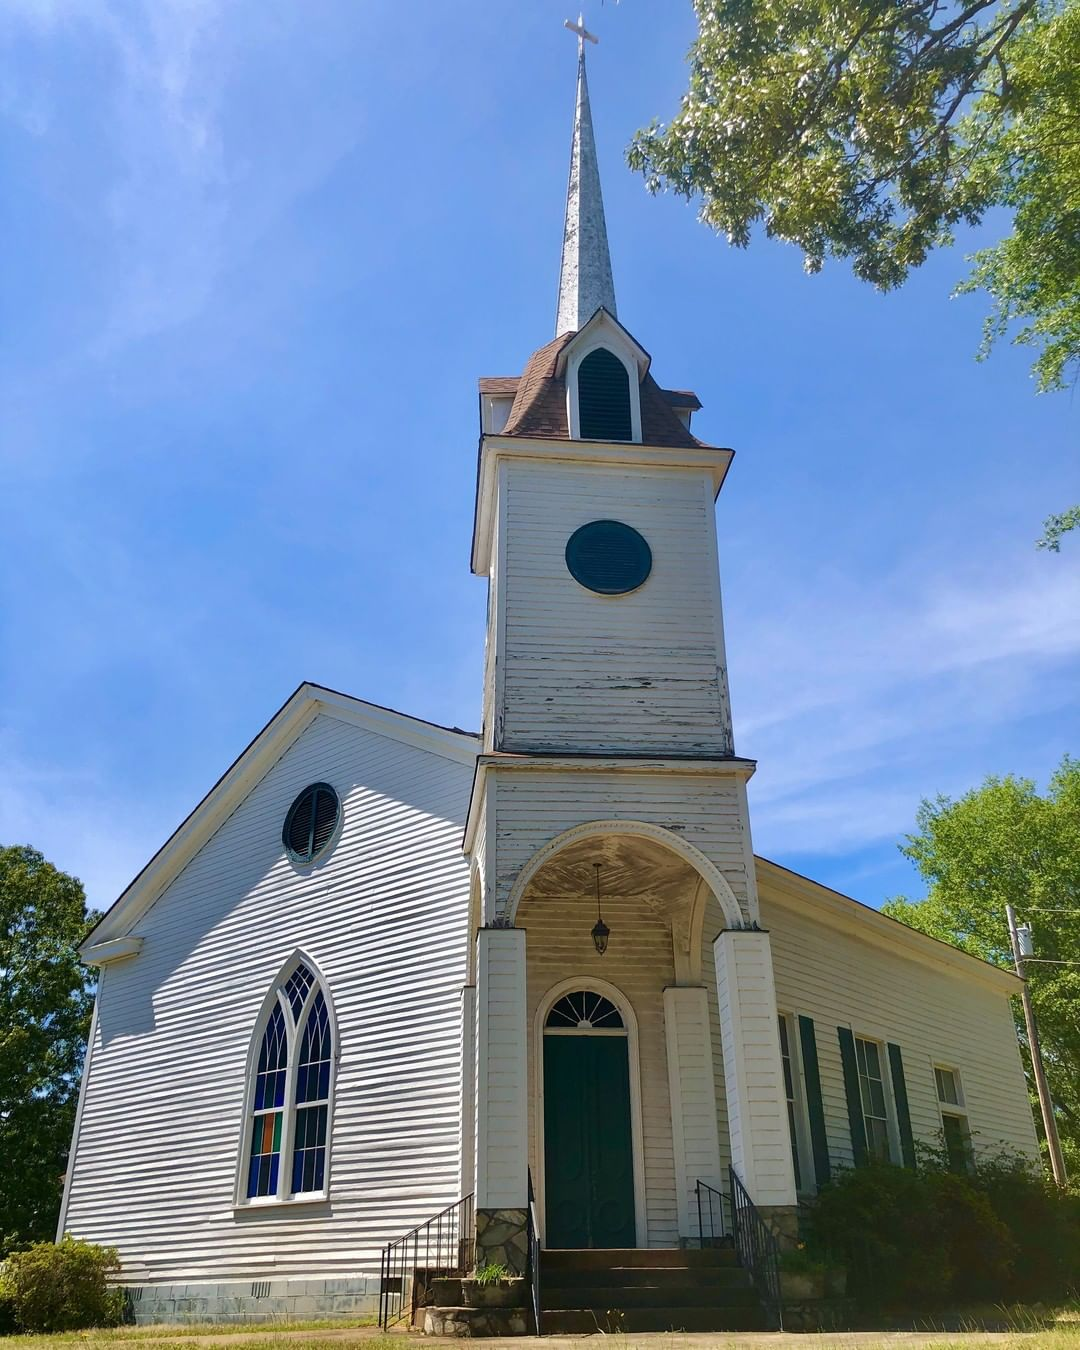 The Providence Presbyterian Church was organized and built in 1842 as the results of the merger of the Providence and New Harmony Presbyterian church that were both in the Lowndesville area. The church was remodeled in 1886 adding the campanile and removing the slave gallery